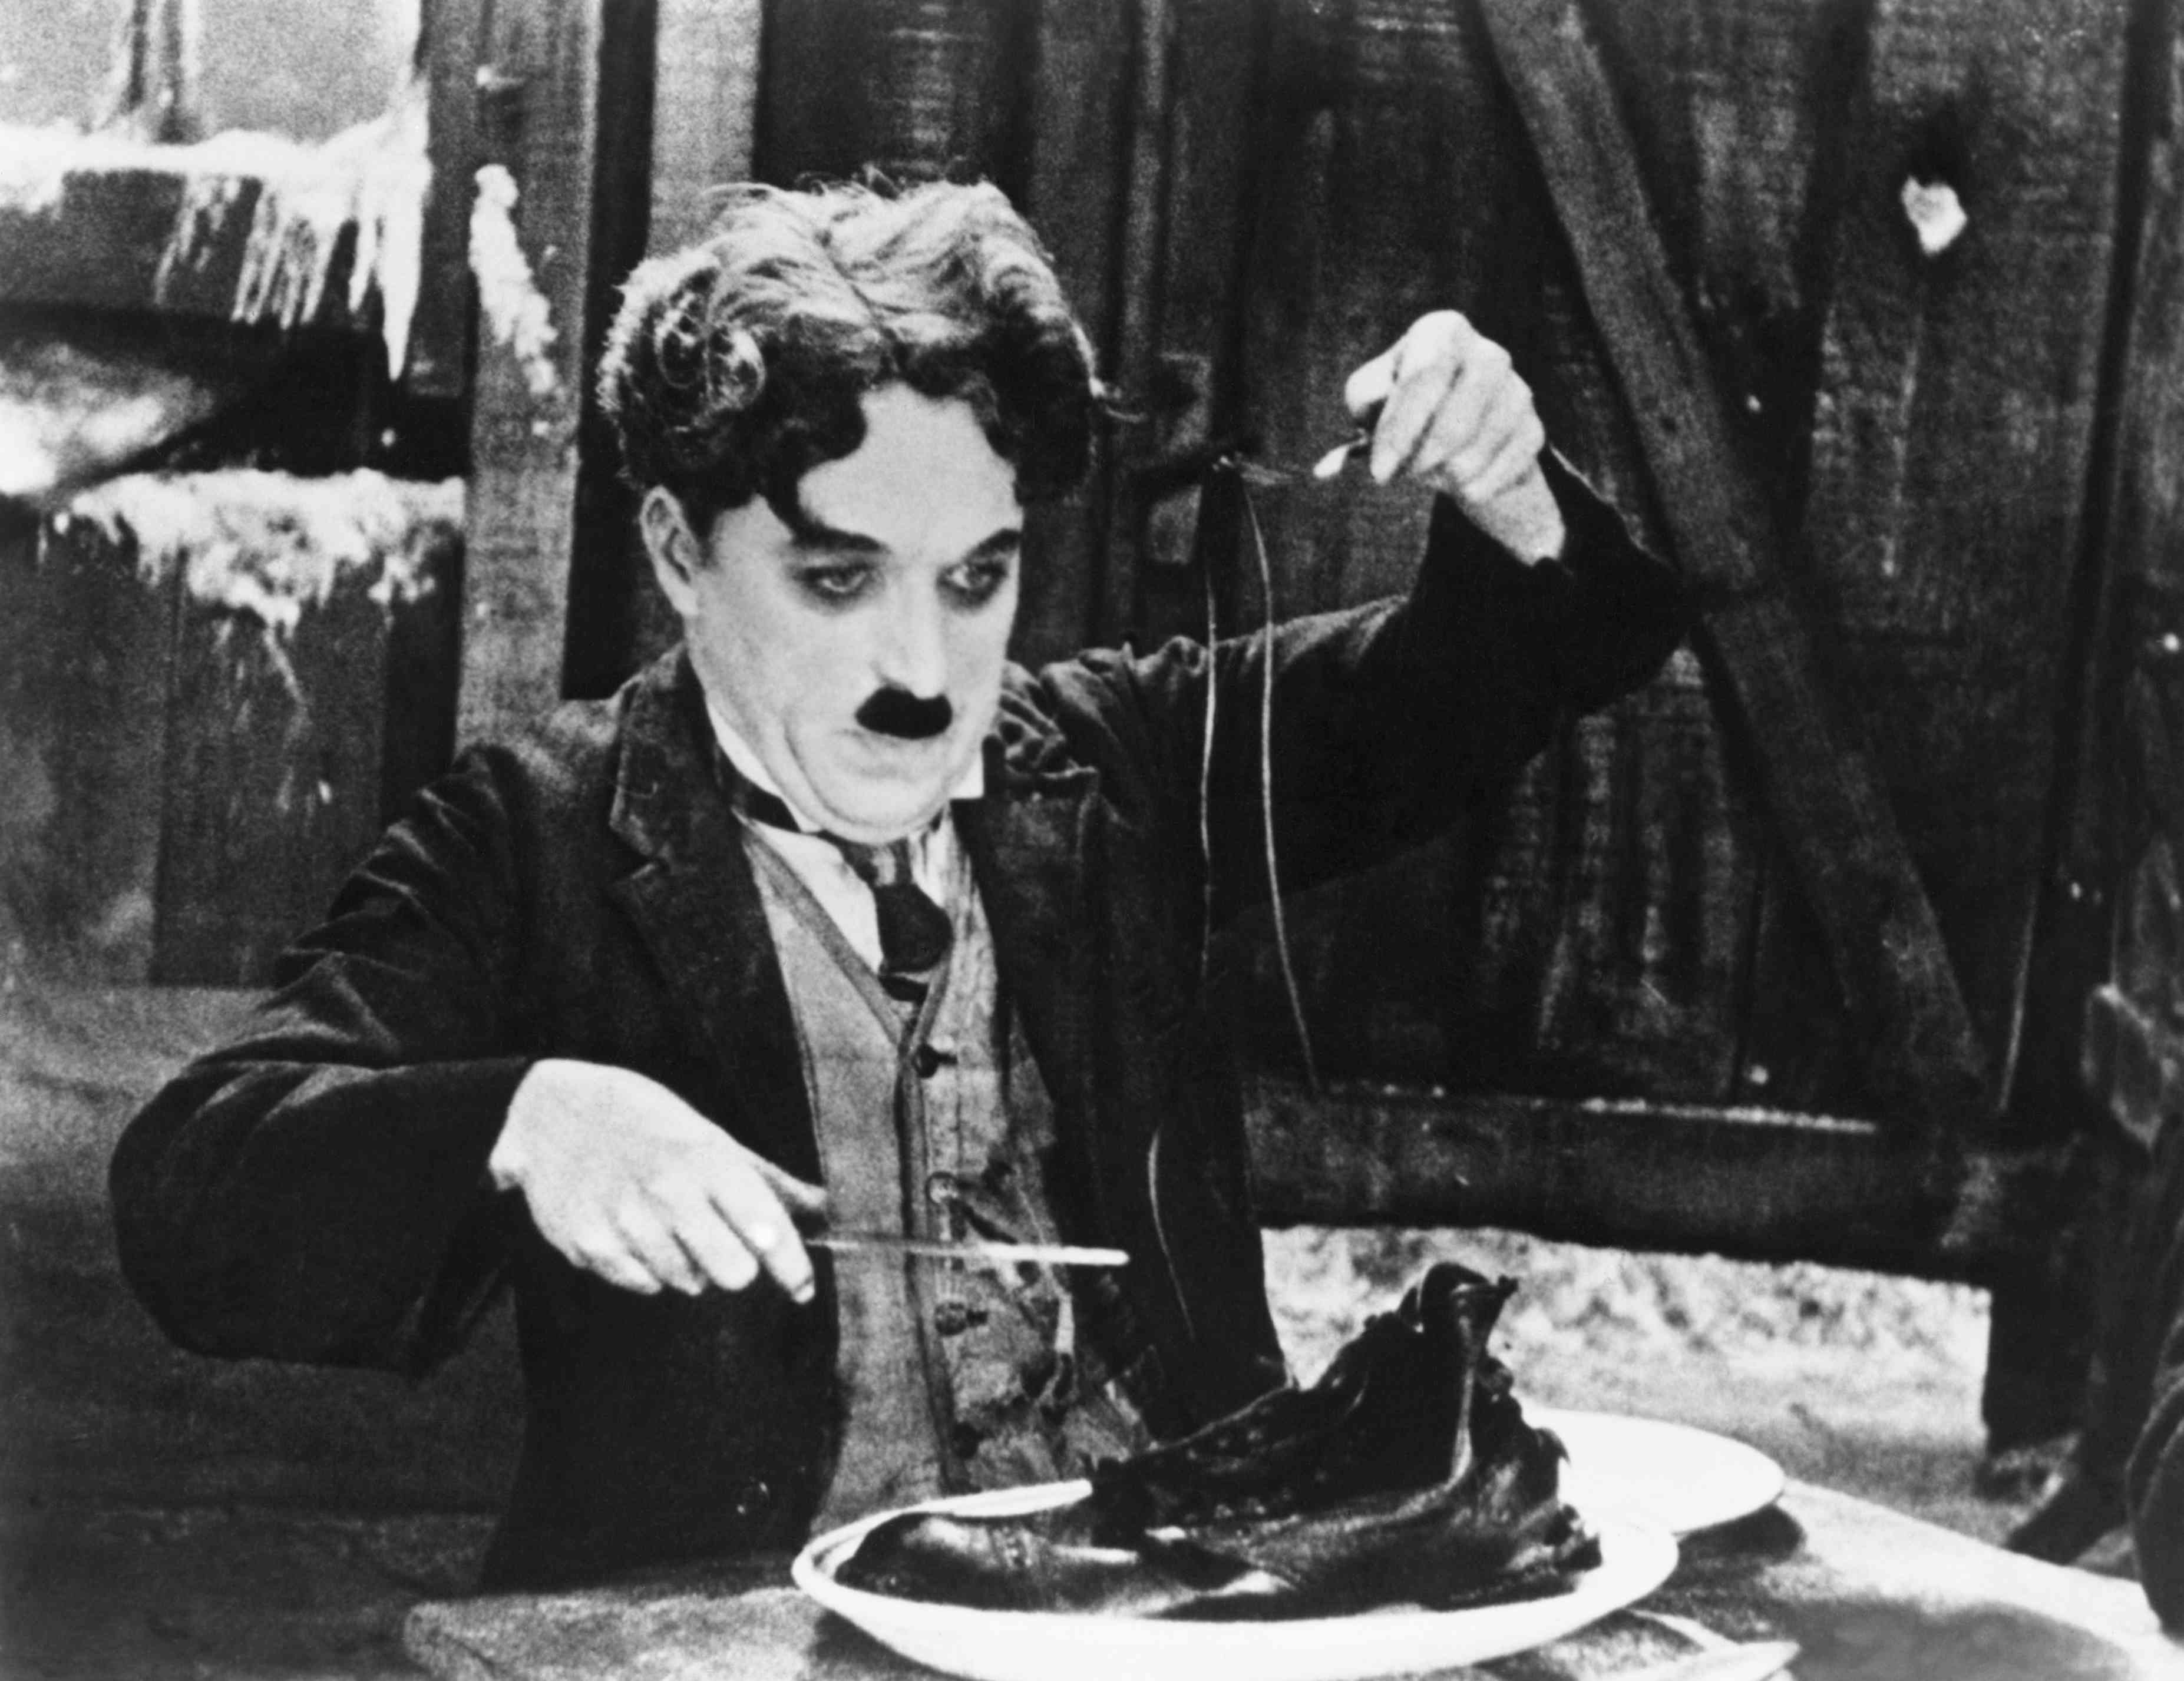 Charlie Chaplin in the Shoe-Eating Scene from The Gold Rush.